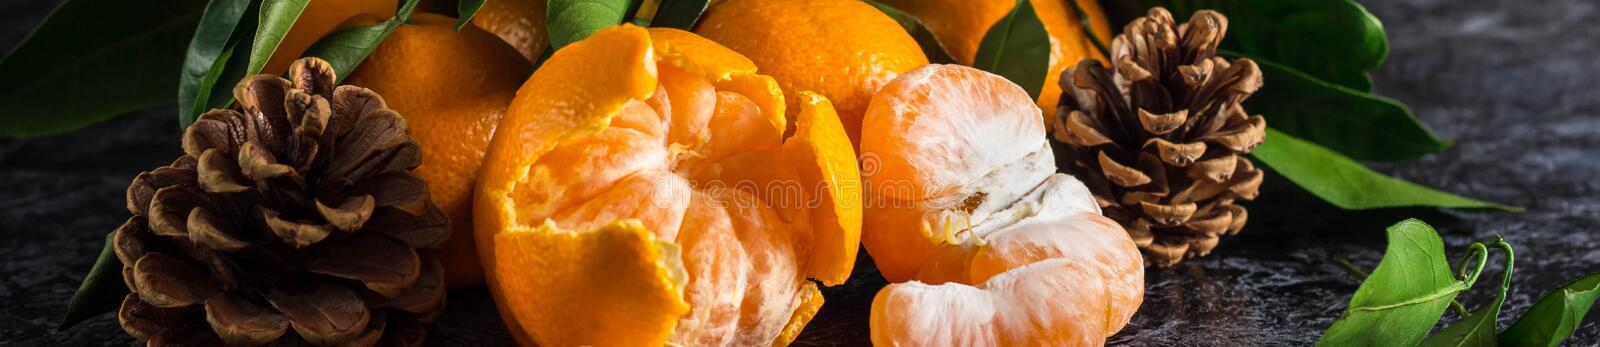 Banner of orange tangerines with green leaves on dark background. Peeled mandarin slices and cones royalty free stock photos